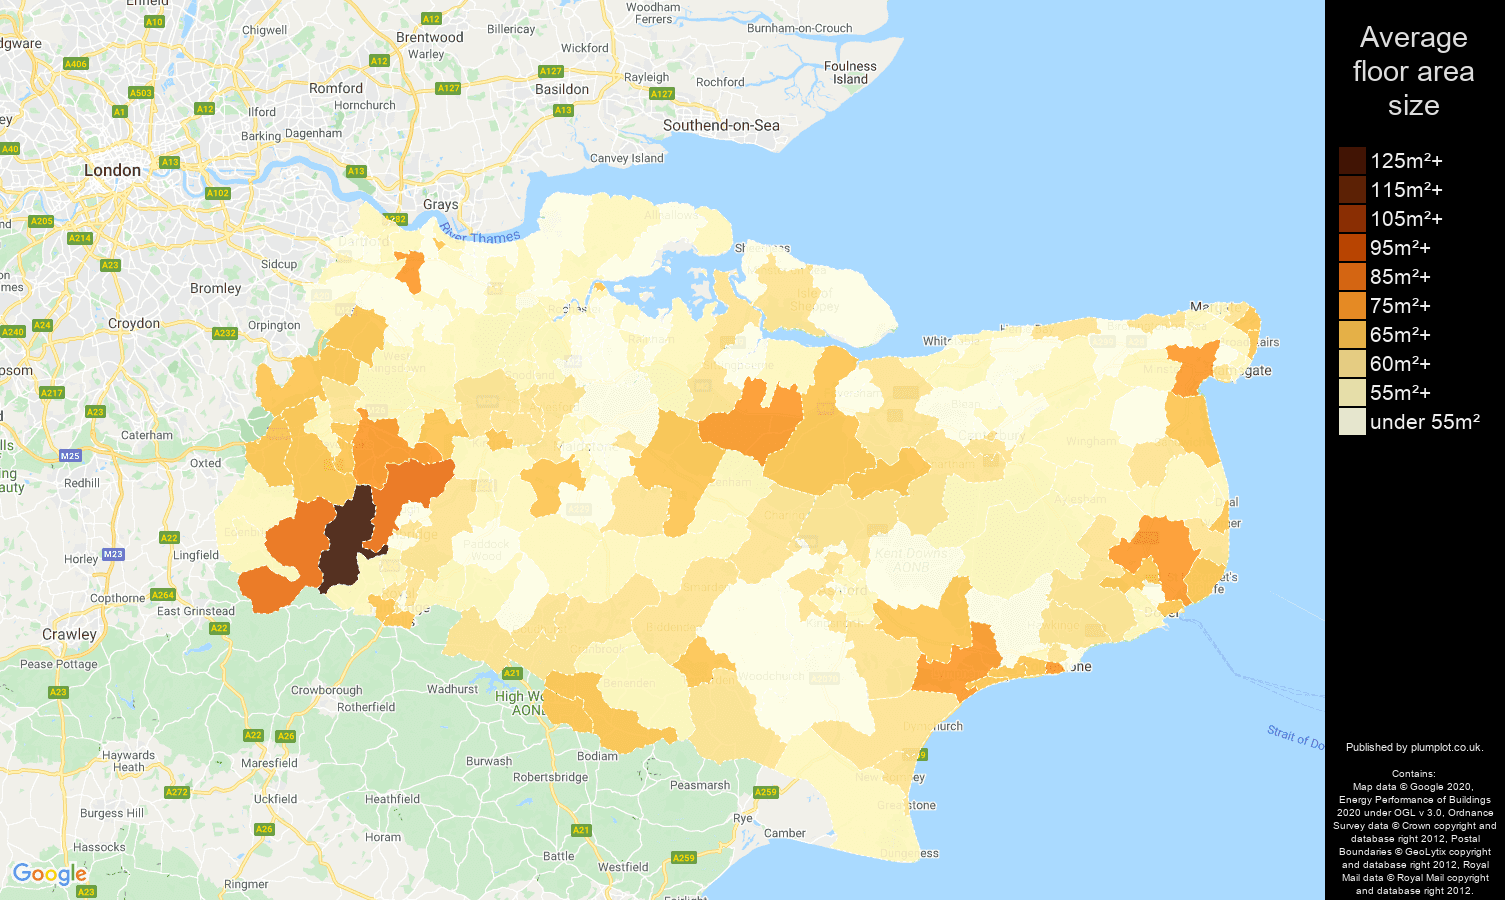 Kent map of average floor area size of flats